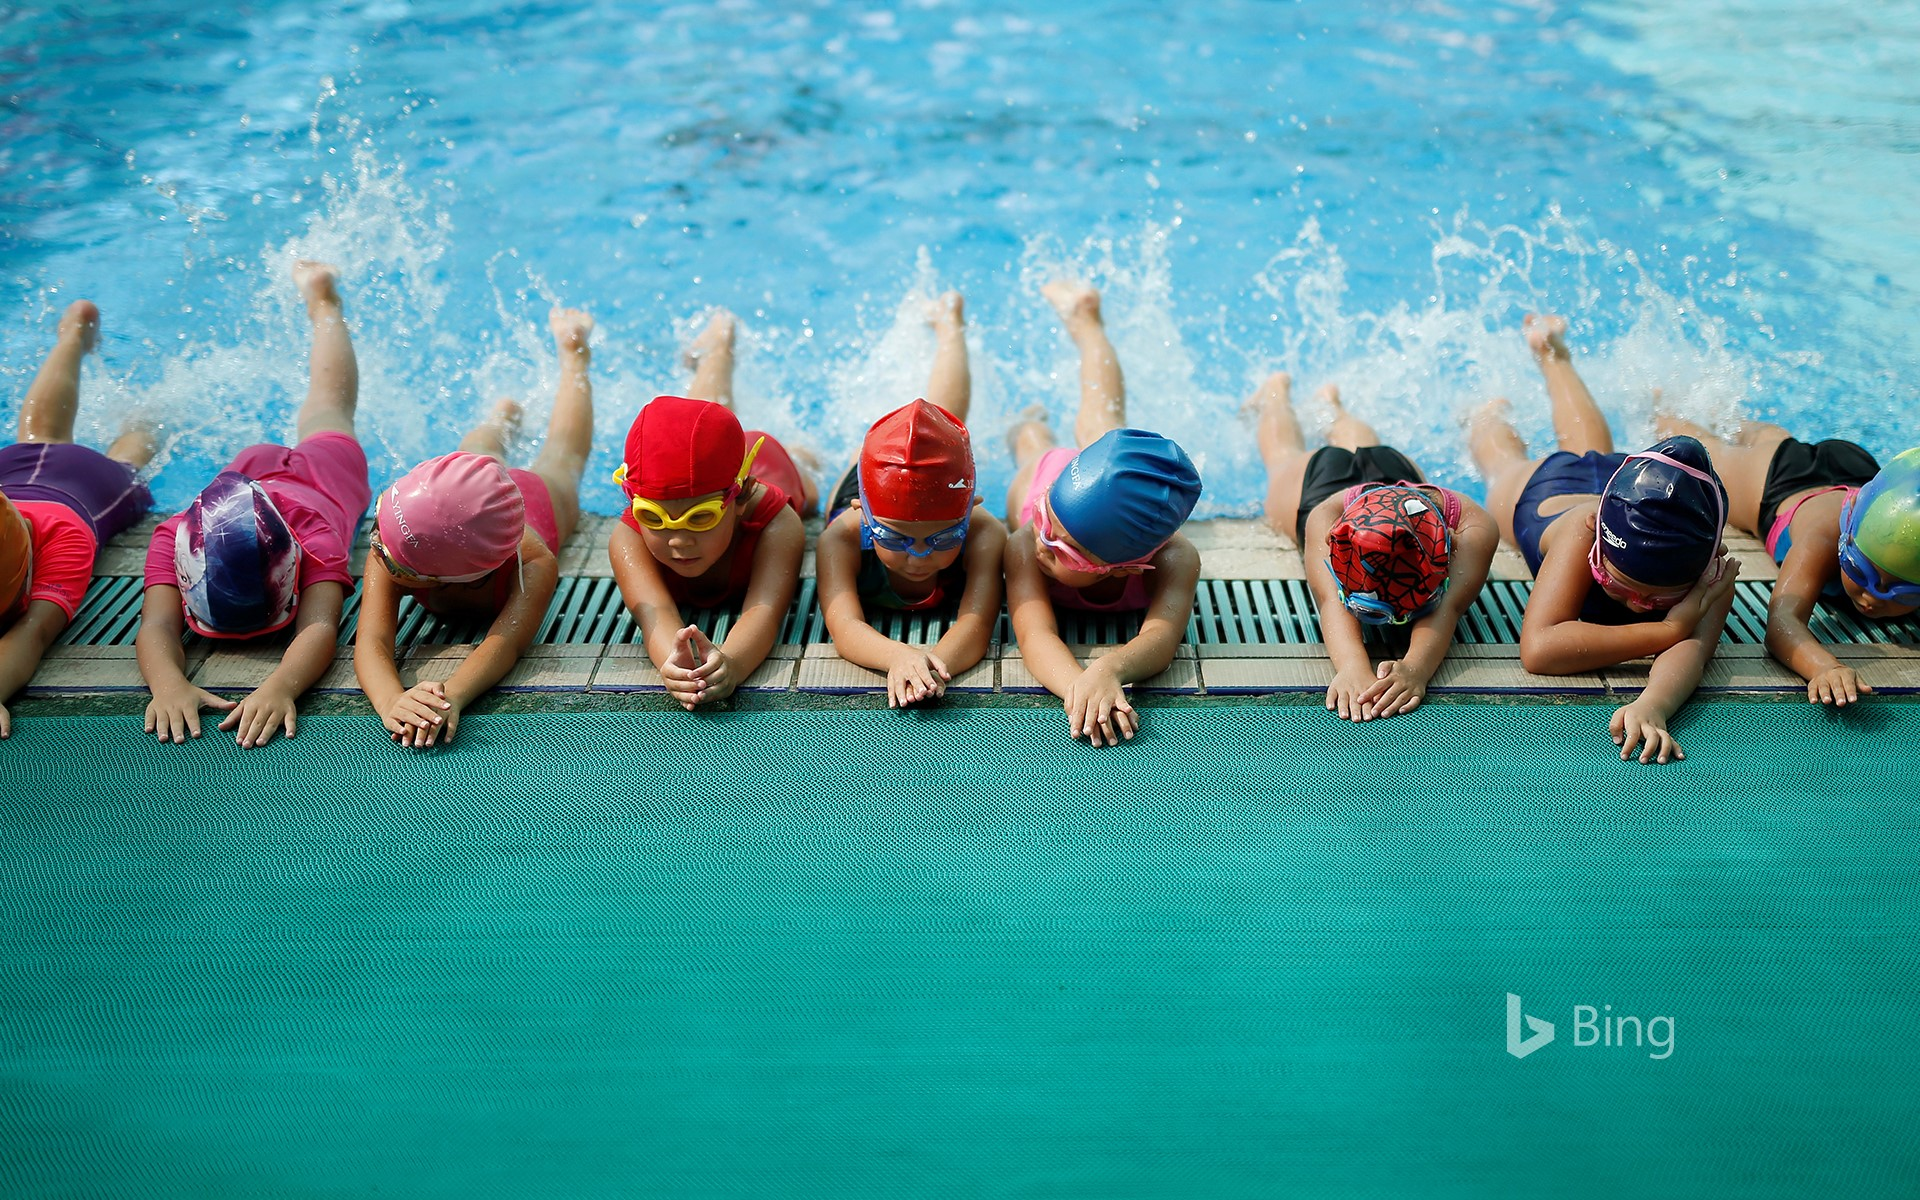 Children are participating in swimming training in the gym of Chen Jinglun Sports School, Hangzhou, China